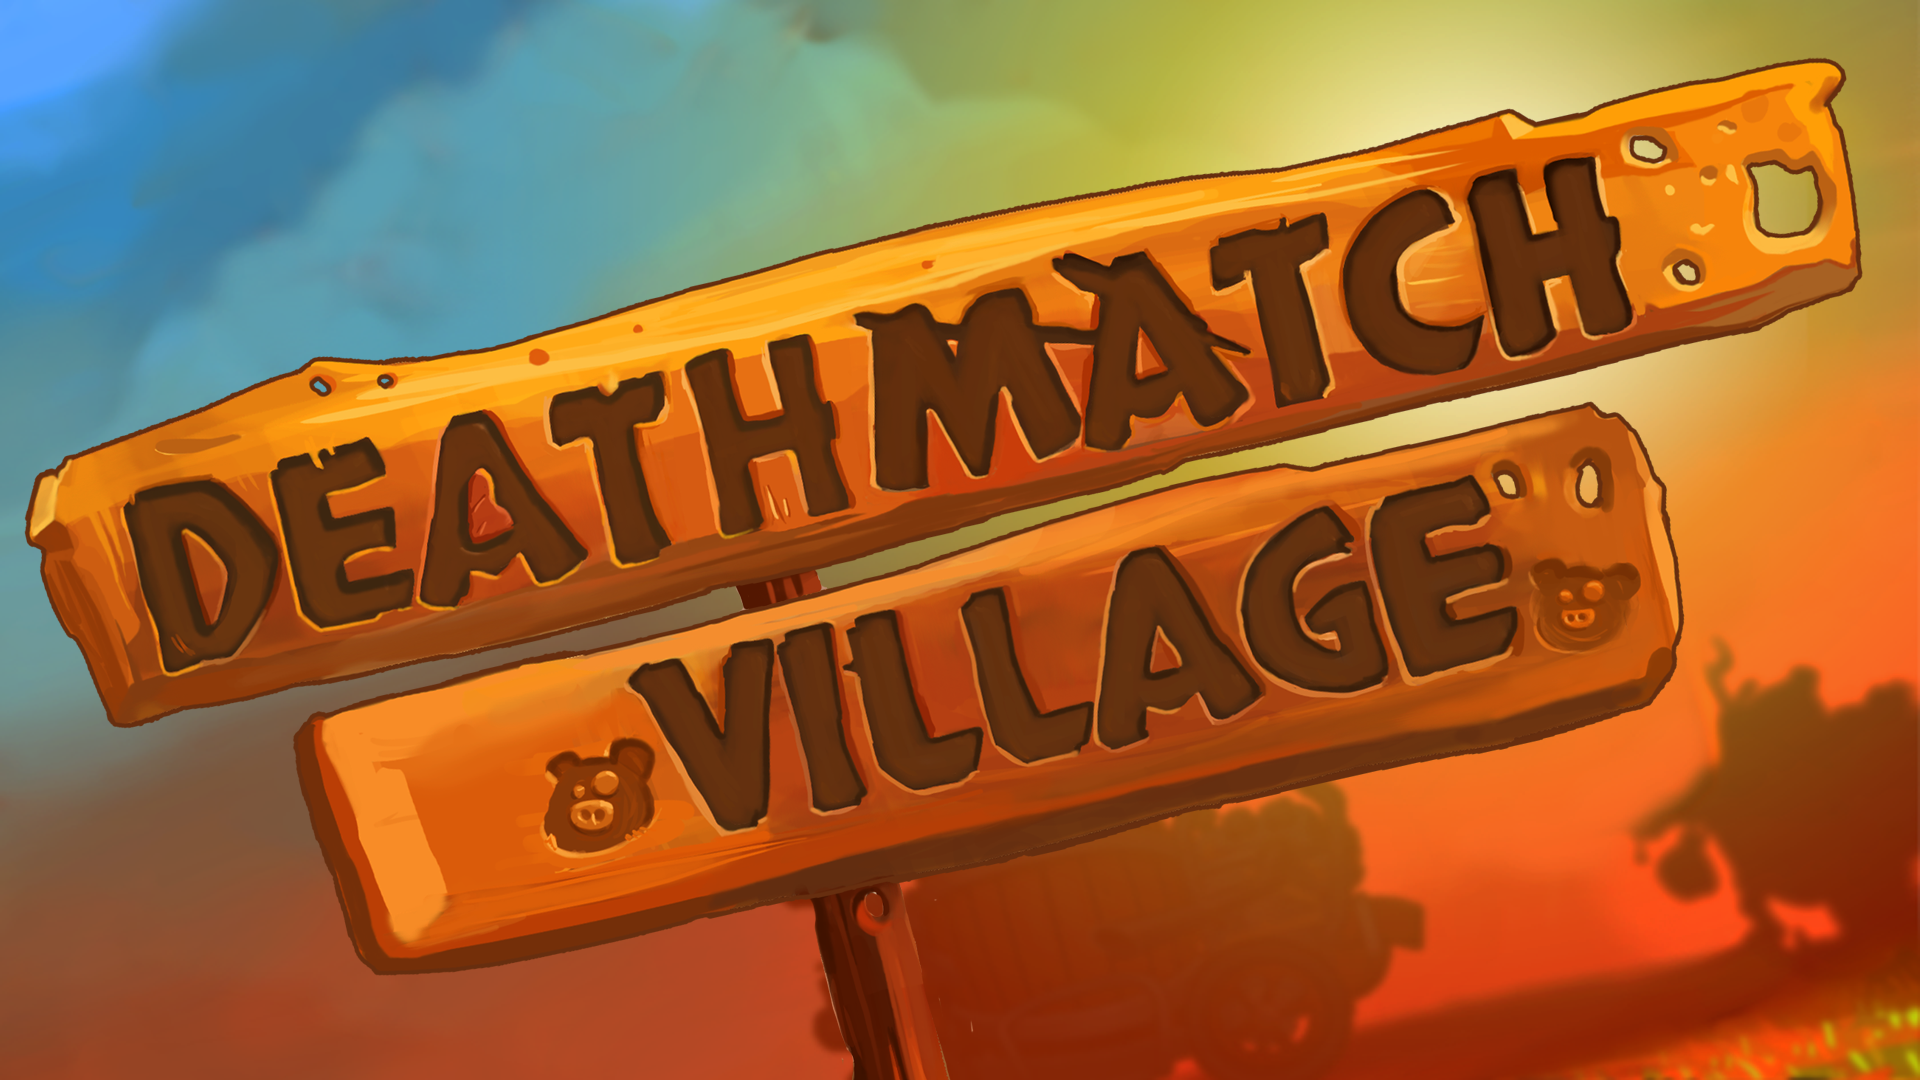 Deathmatch_Village